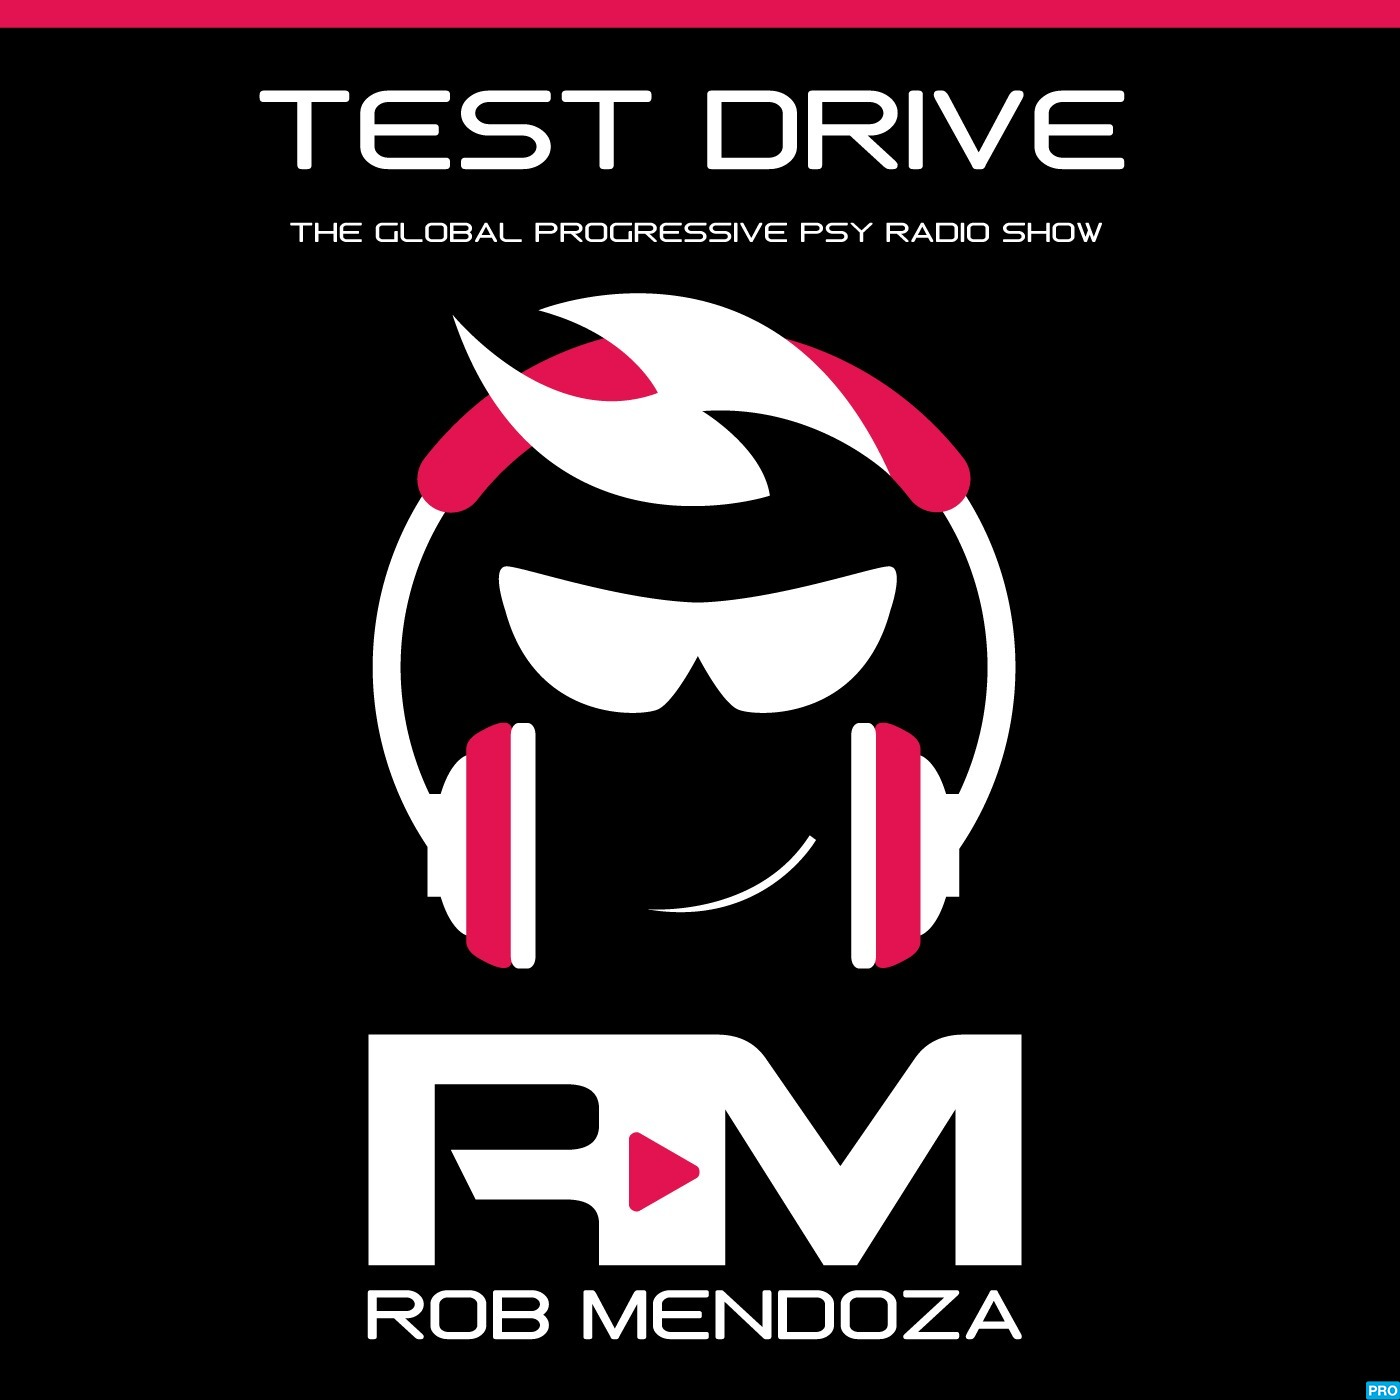 Test Drive - The Global Progressive Psy Radio Show